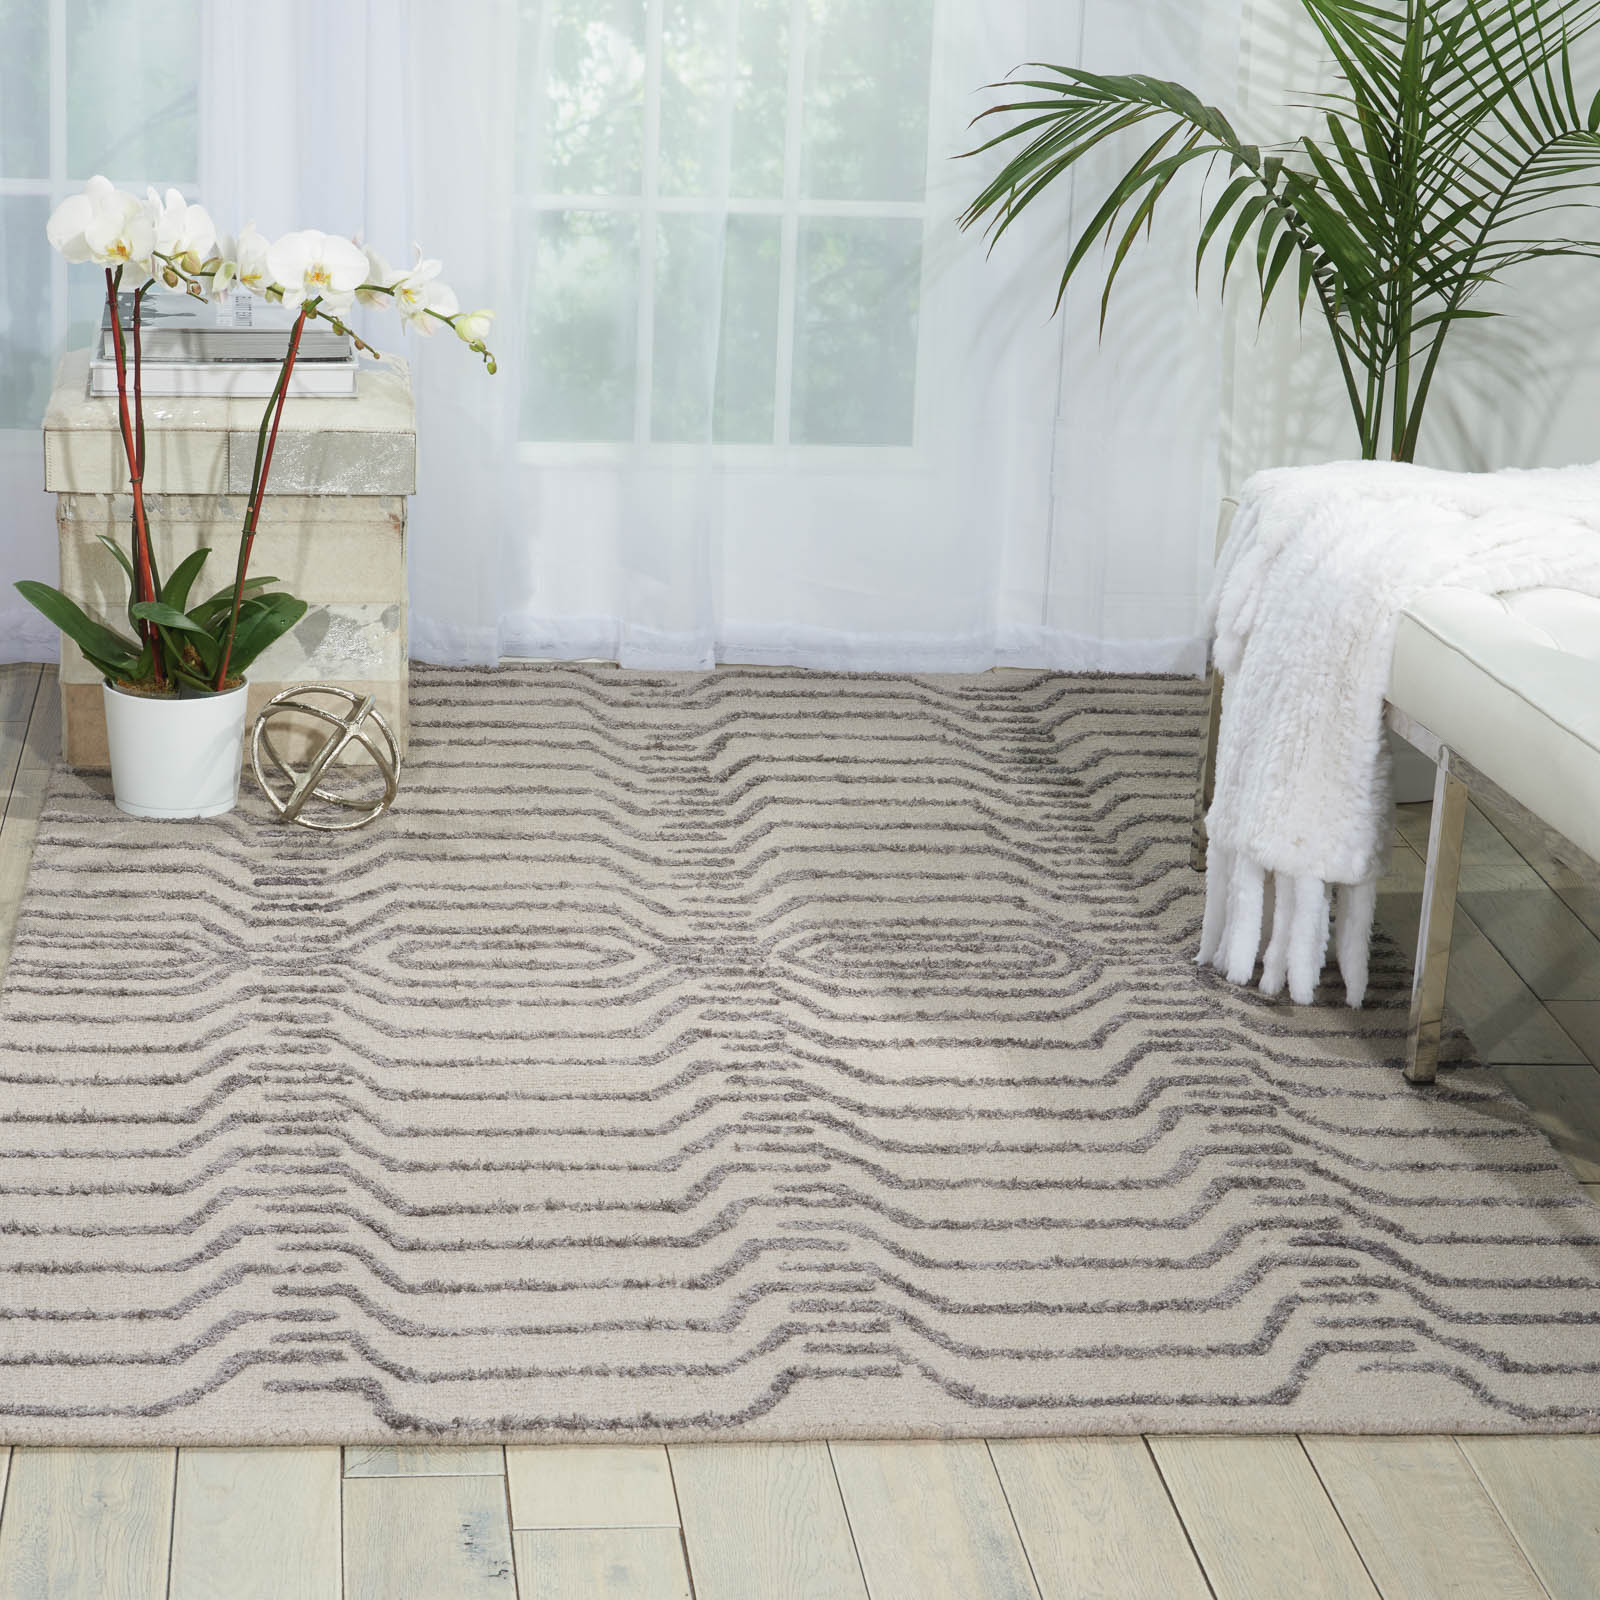 Strata Rugs STT07 in Silver and Grey